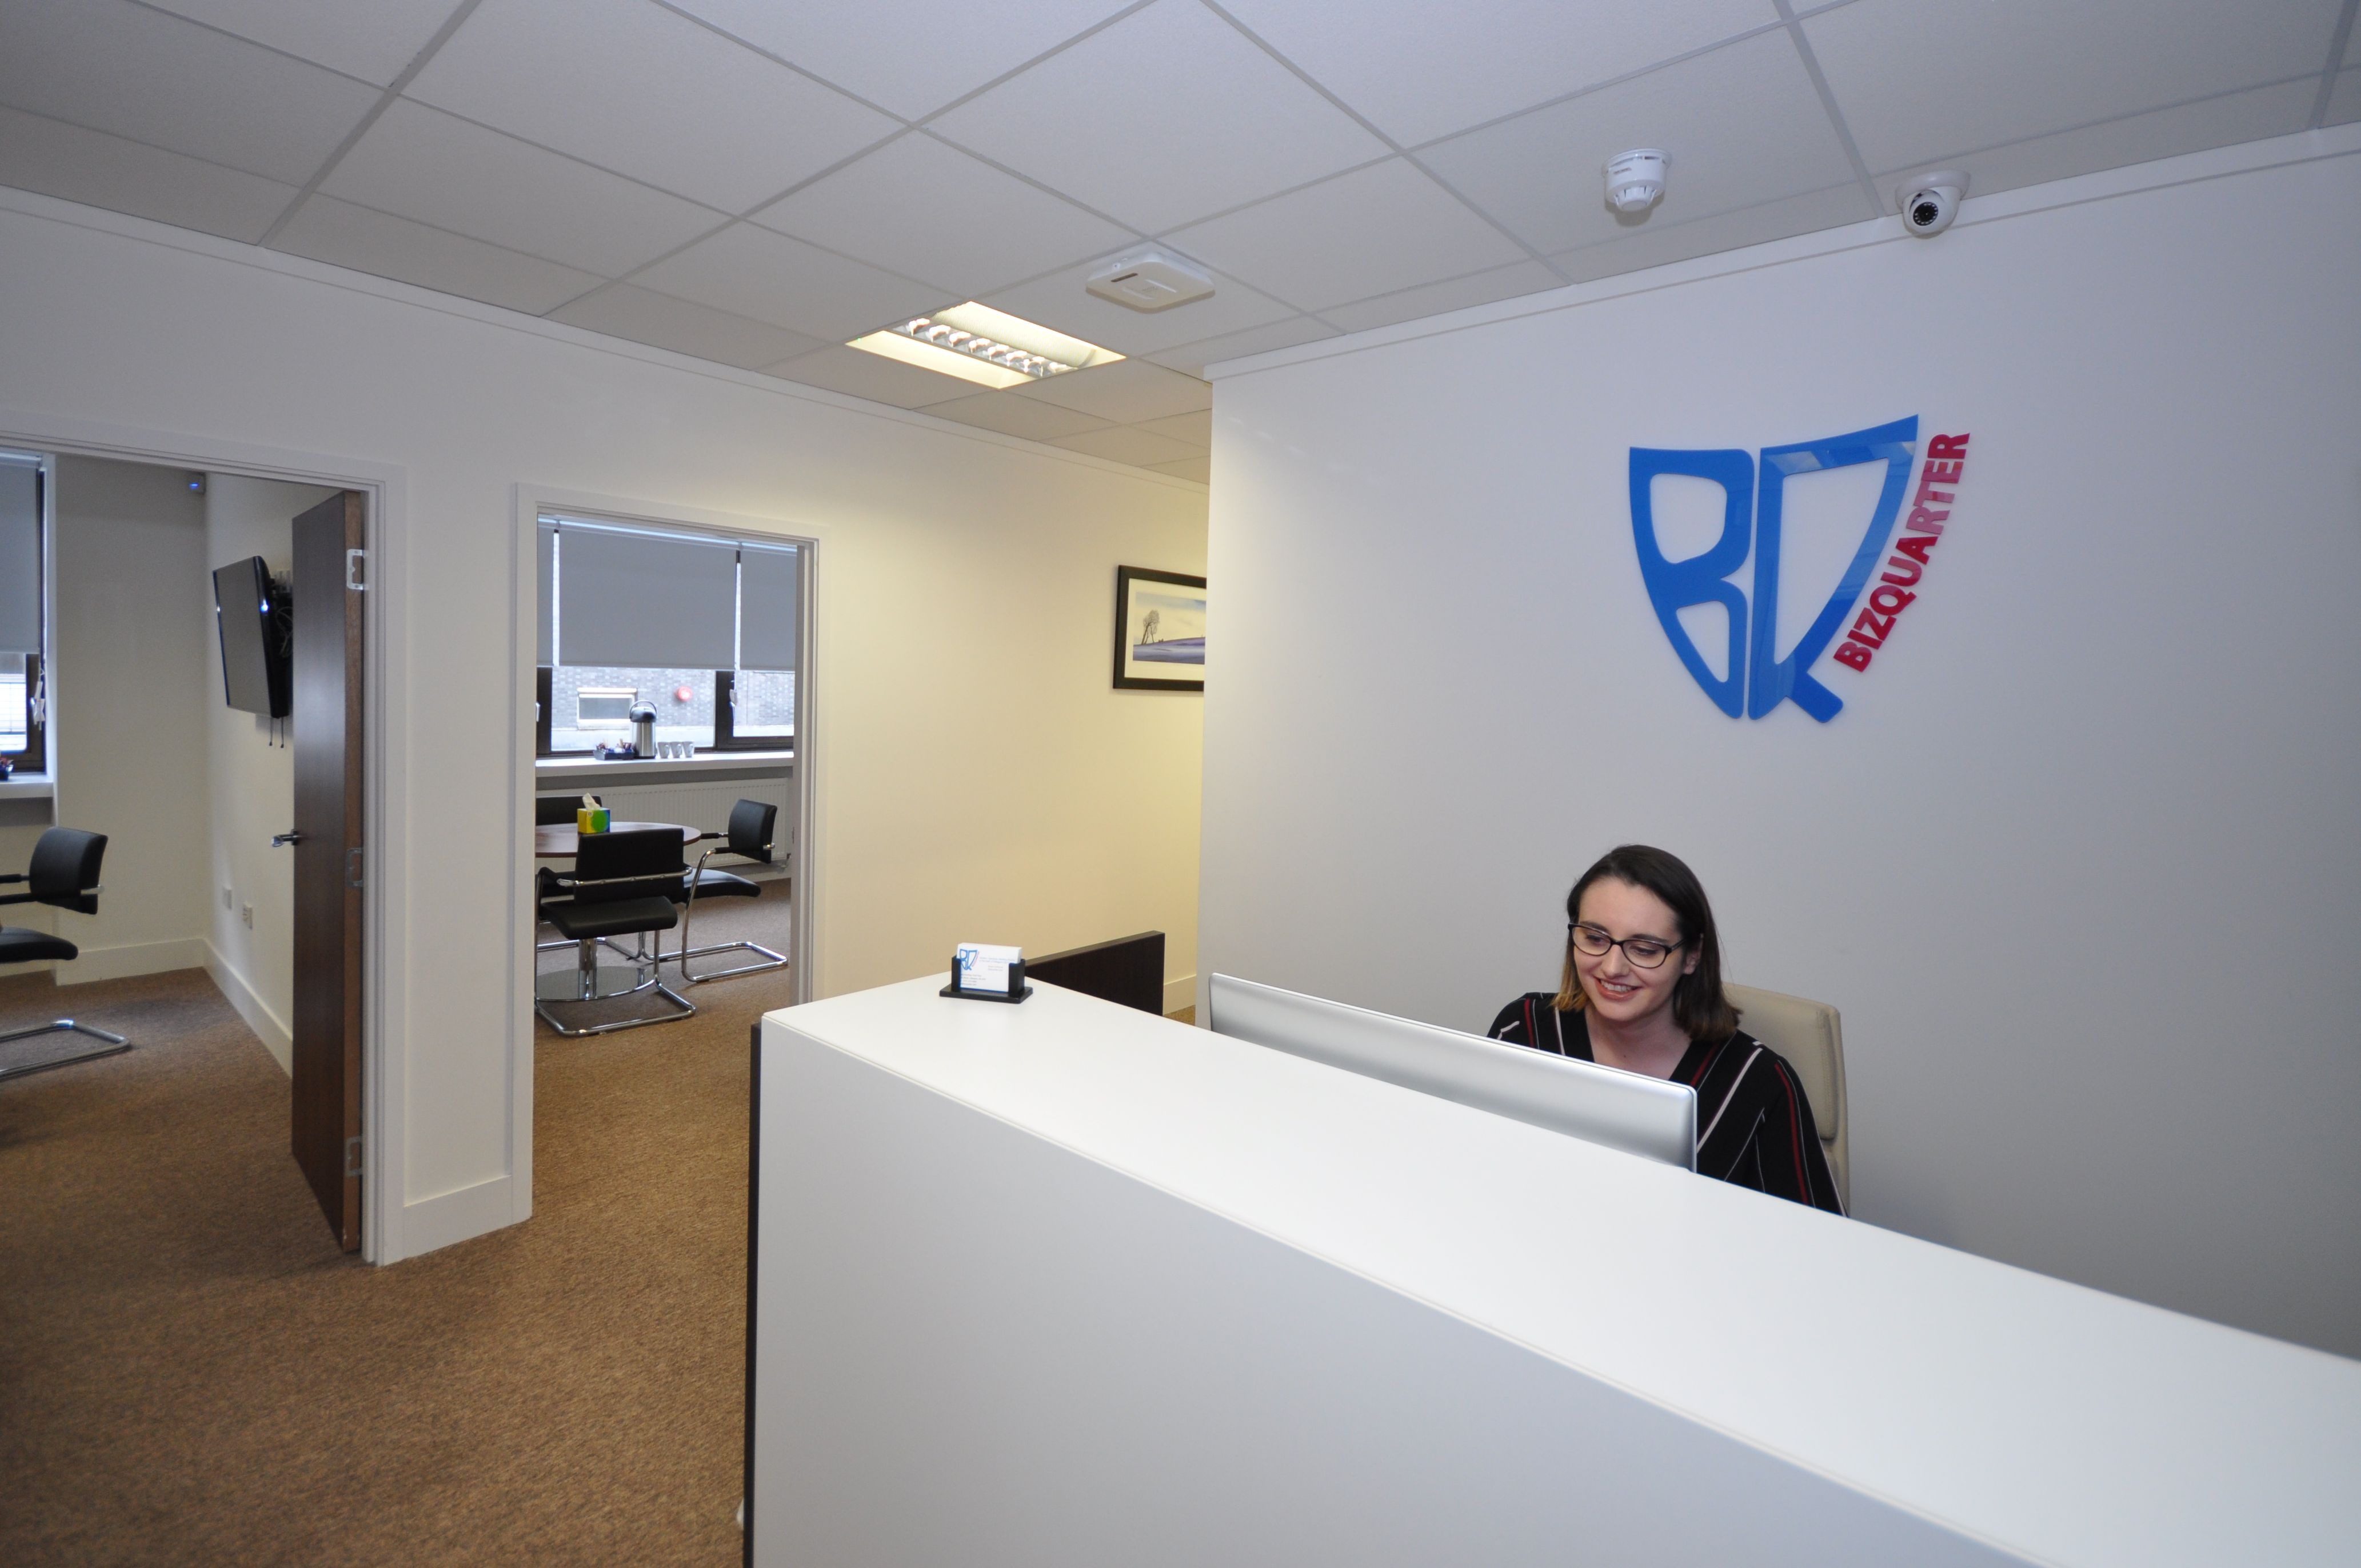 Our team are here to ensure an excellent business experience.